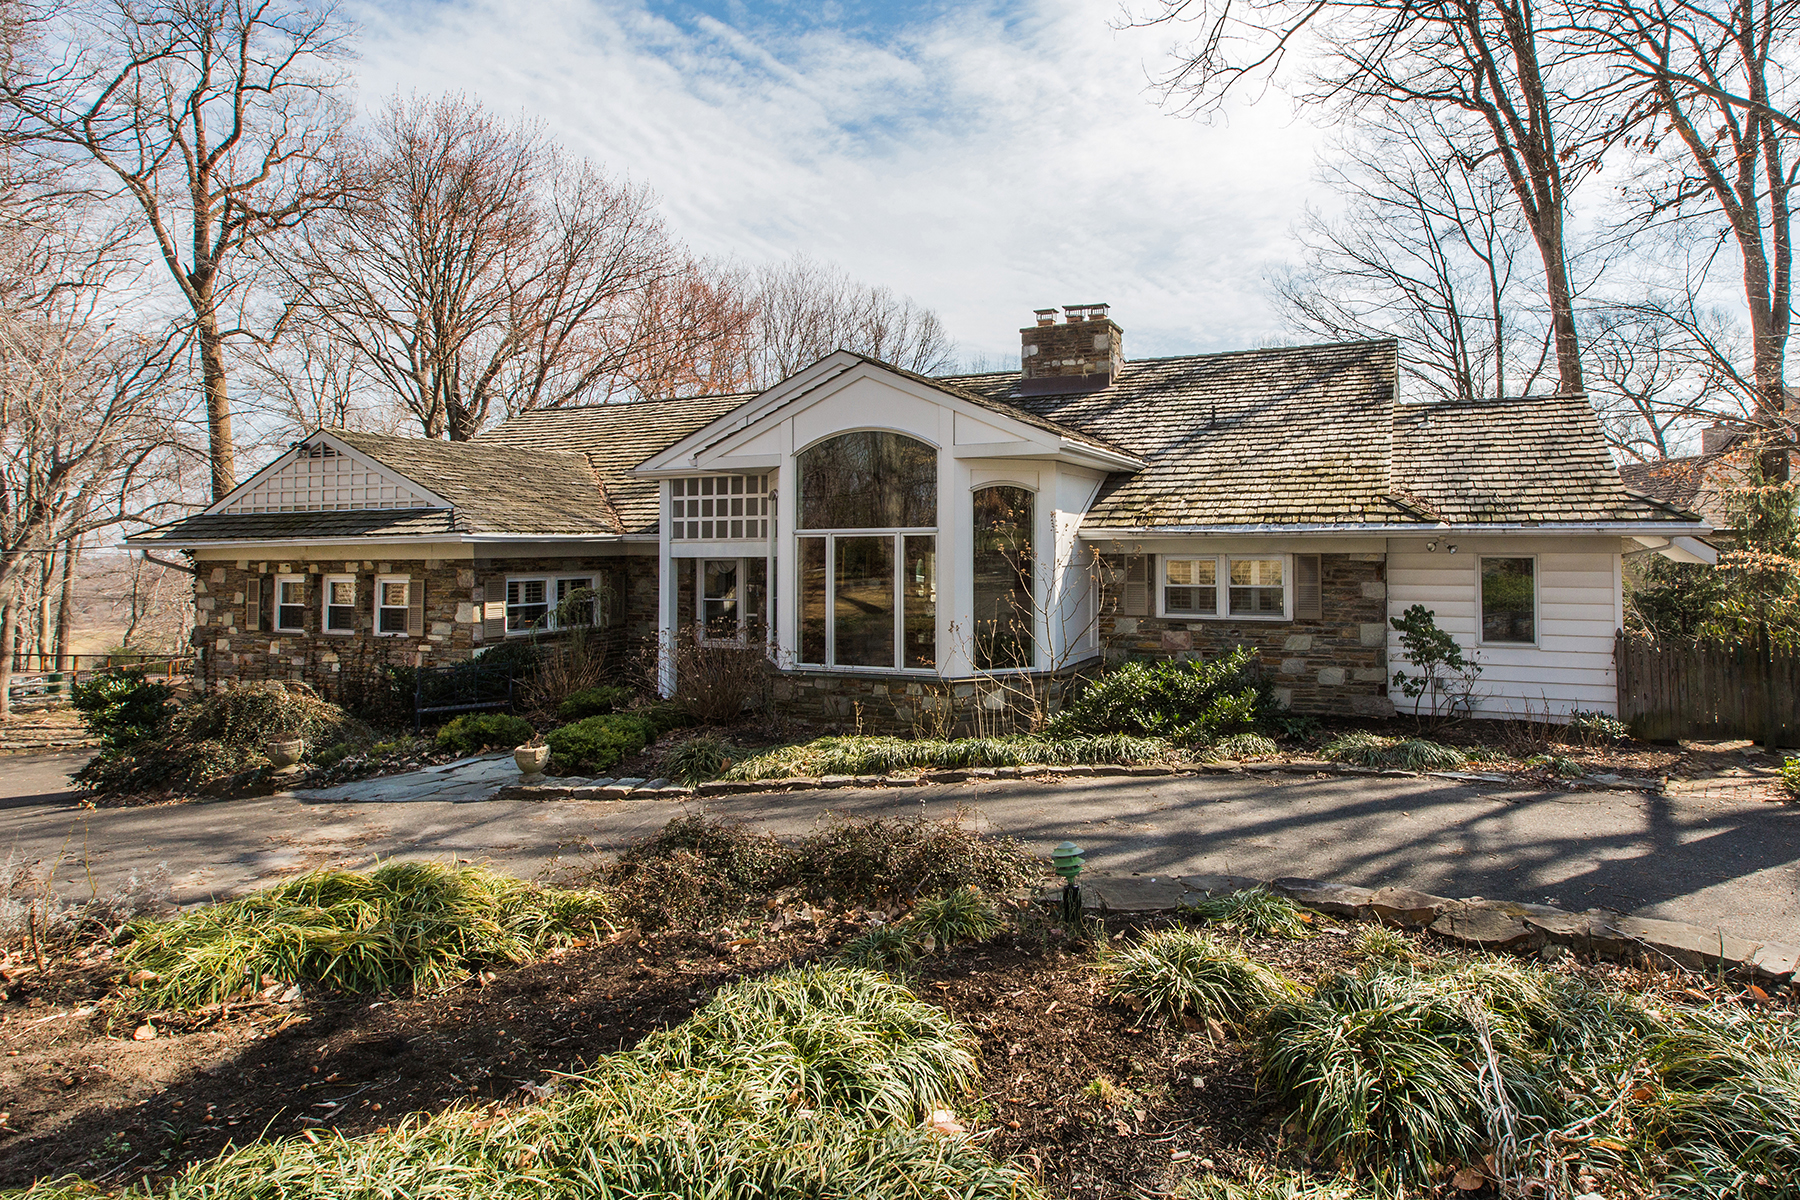 Single Family Home for Sale at Huntingdon Valley, PA 2245 Country Club Dr Huntingdon Valley, Pennsylvania, 19006 United States